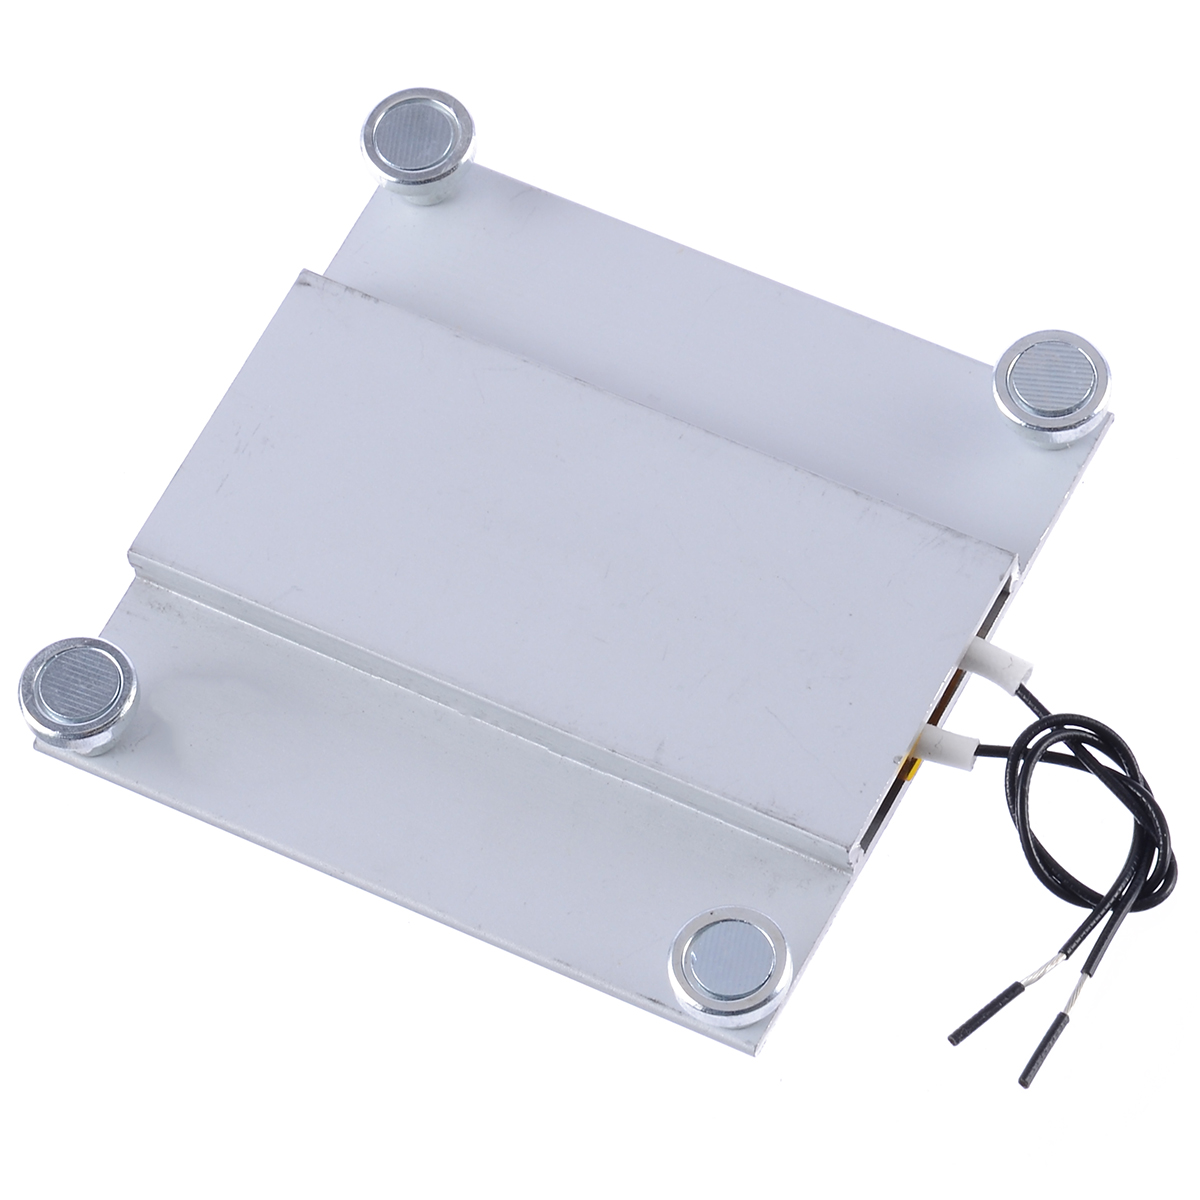 1pc New 220V PTC Thermostat Heating Plate Soldering Station For TV LED Backlight Temperature 260 Degrees Aluminum 68*70mm